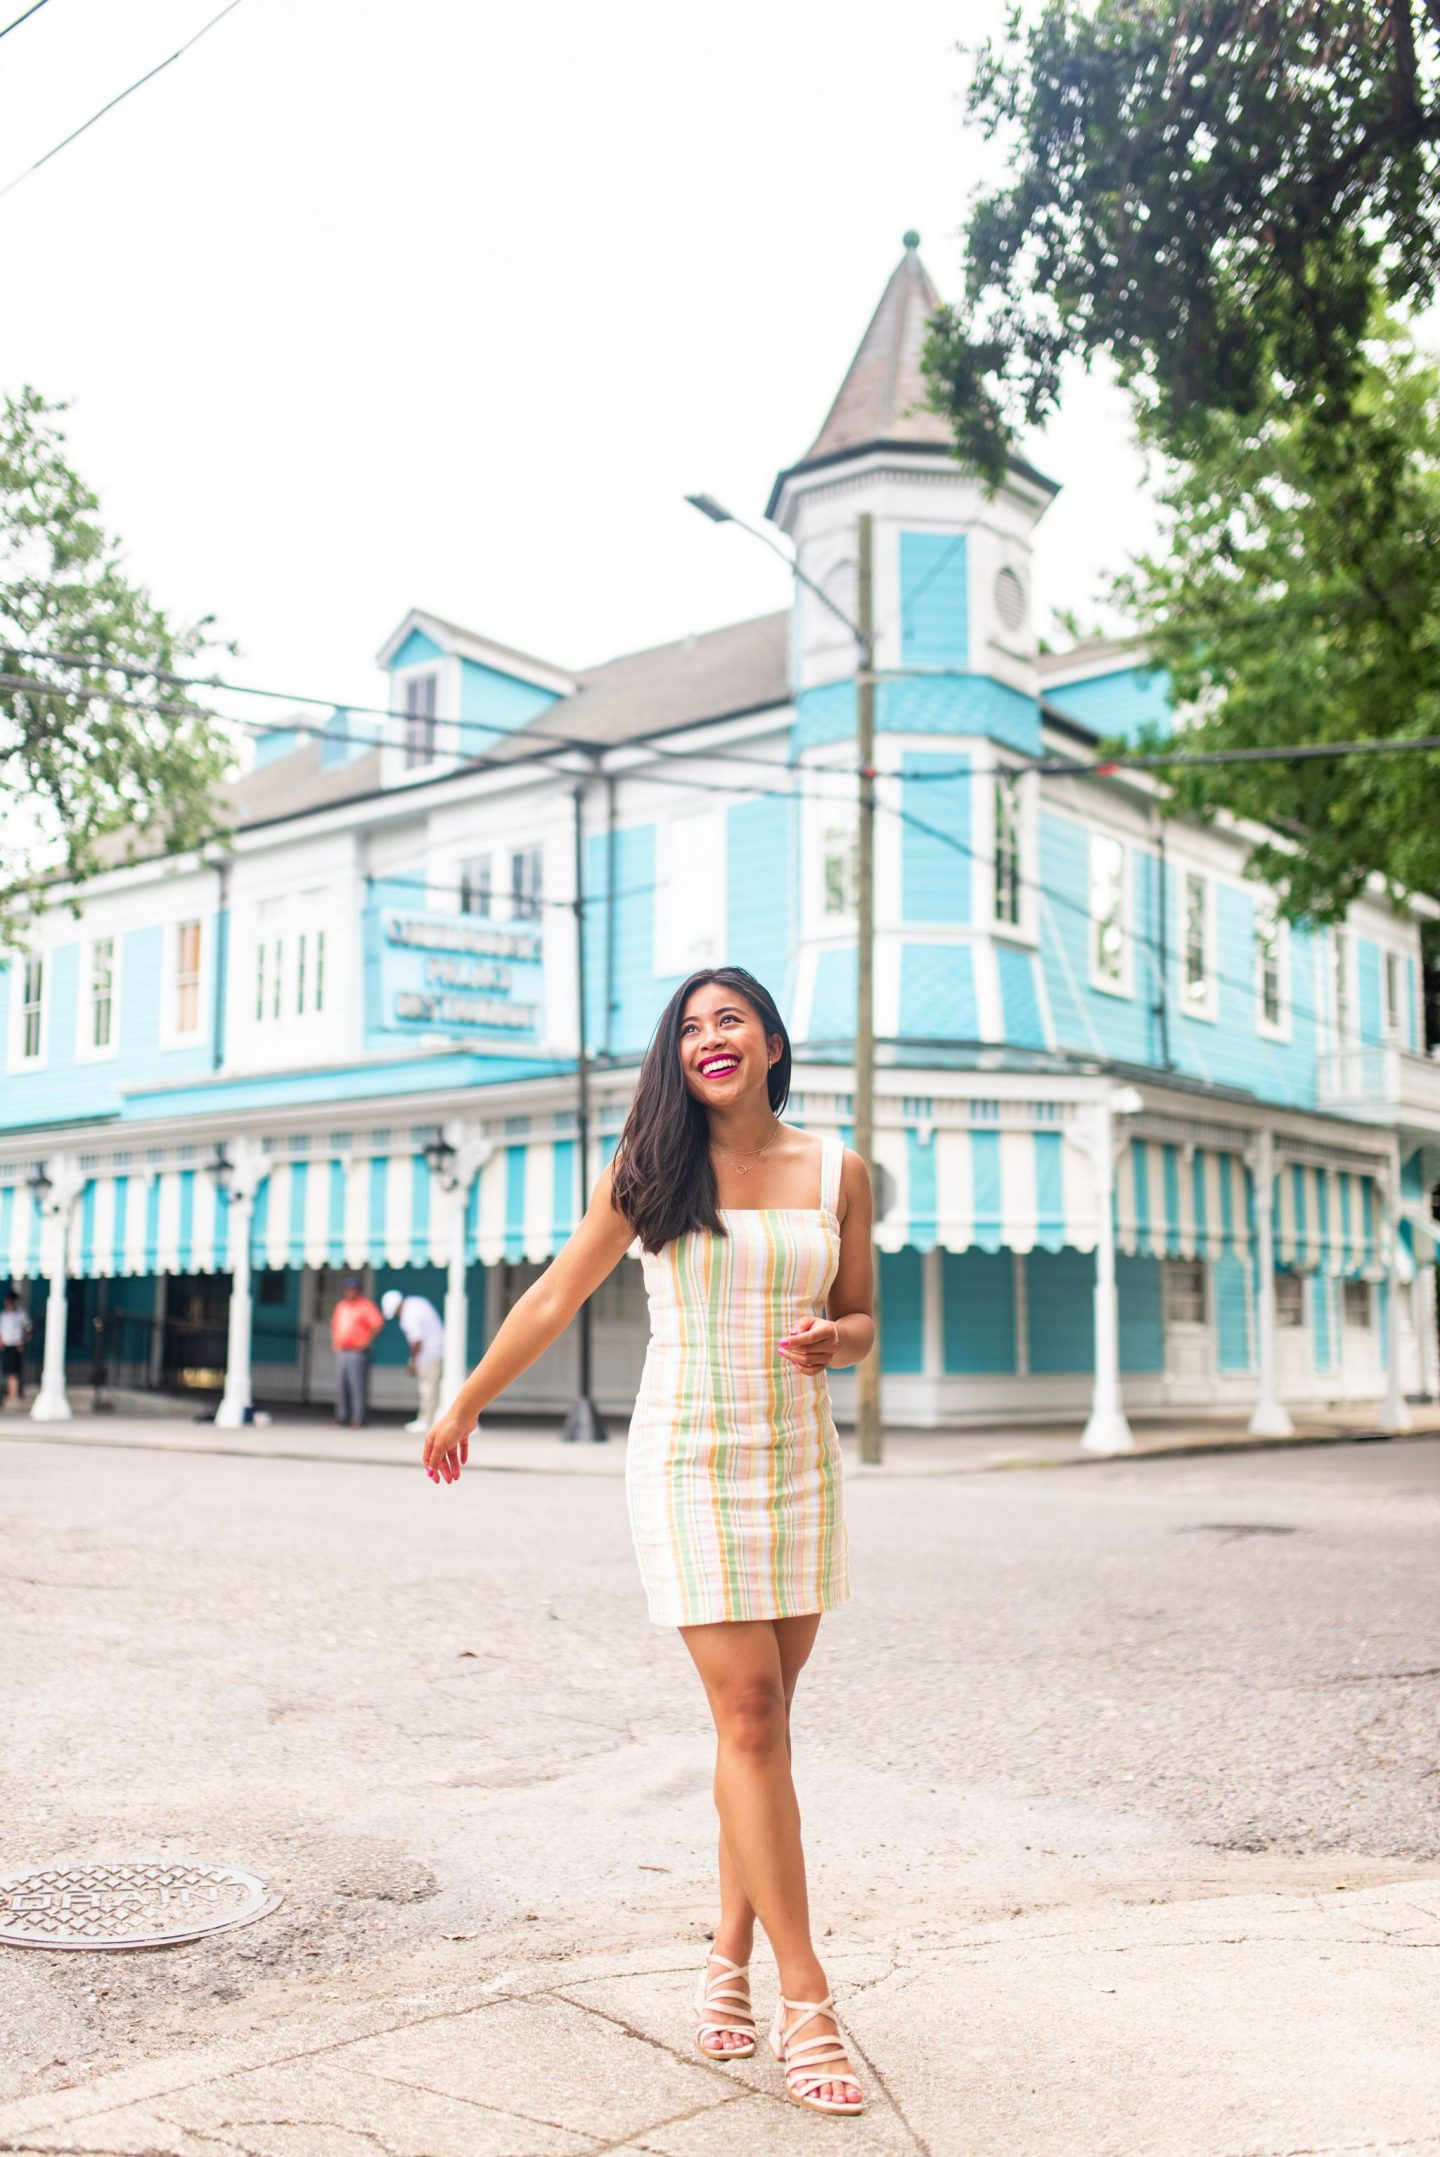 Commanders Palace - Garden District - Most instagrammable Places in Orleans – best photo spots in New Orleans – New Orleans street photography – Instagram worthy spots in new Orleans – NOLA Instagram spots